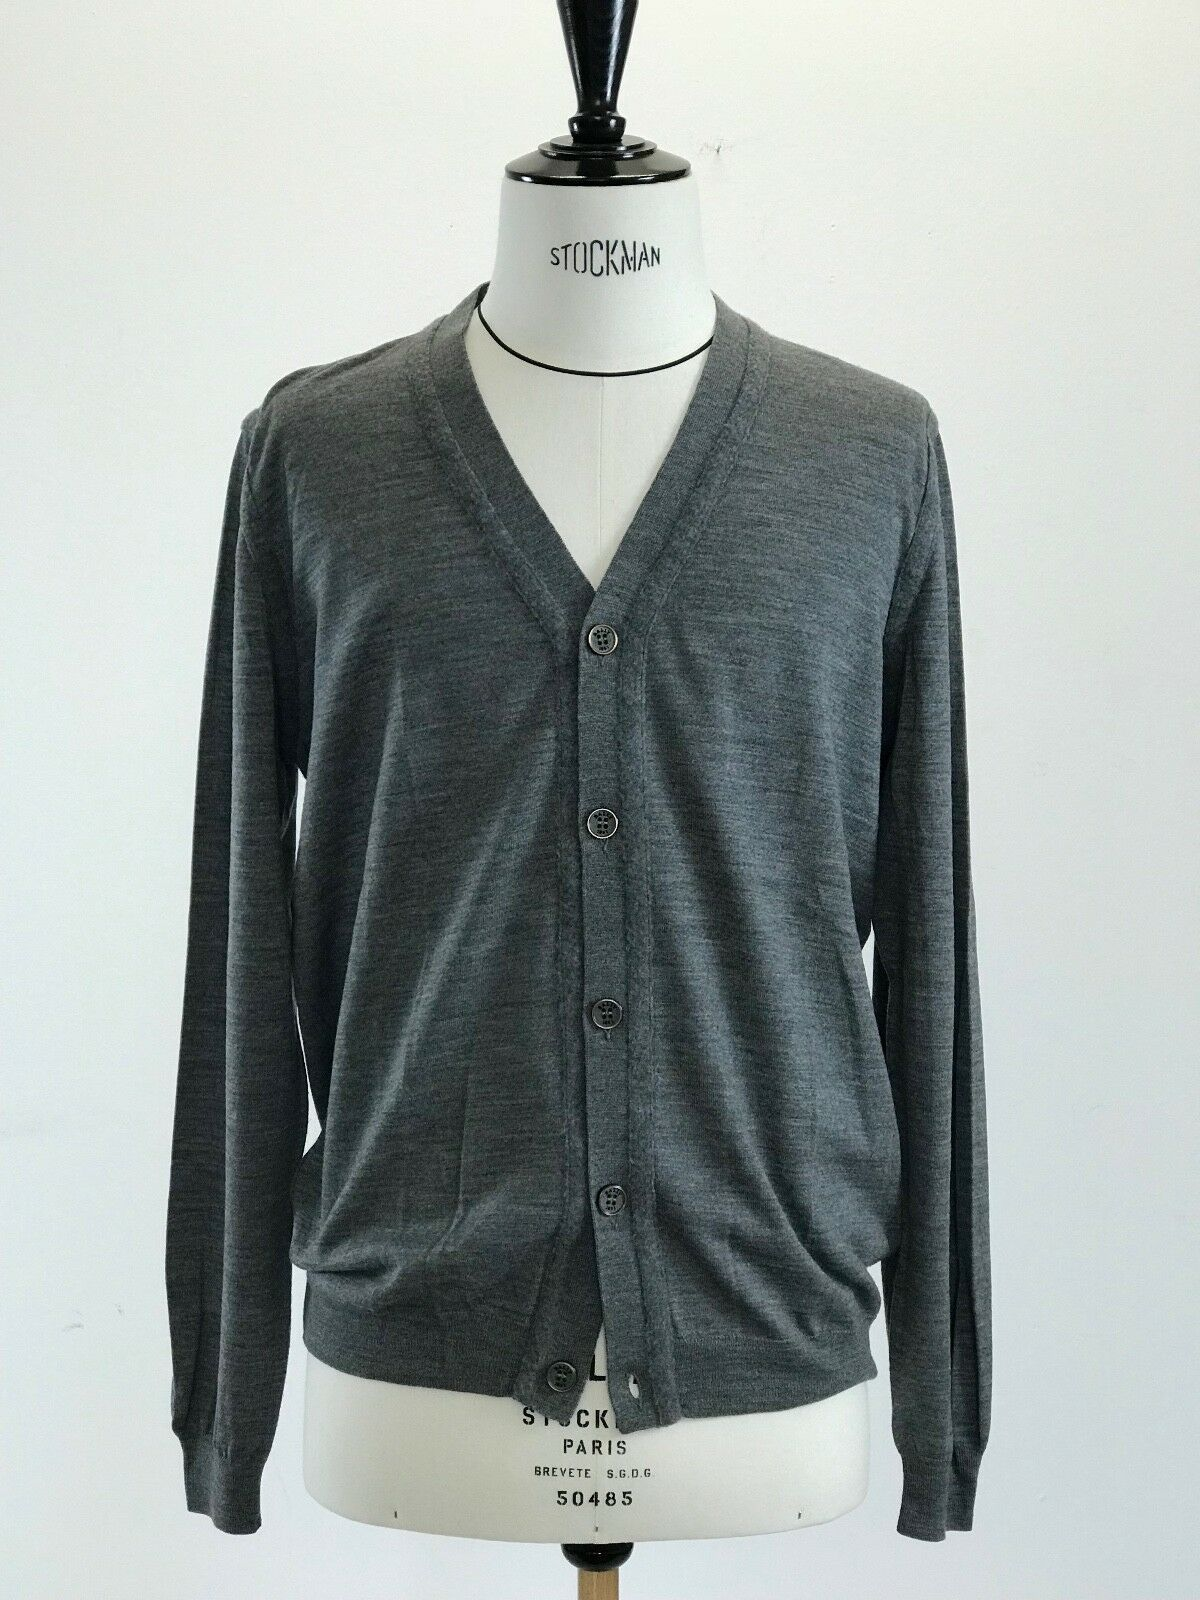 BALLY Herren Cardigan Strickjacke Neu ohne Etikett Grau Gr. 52 Superfine Wool